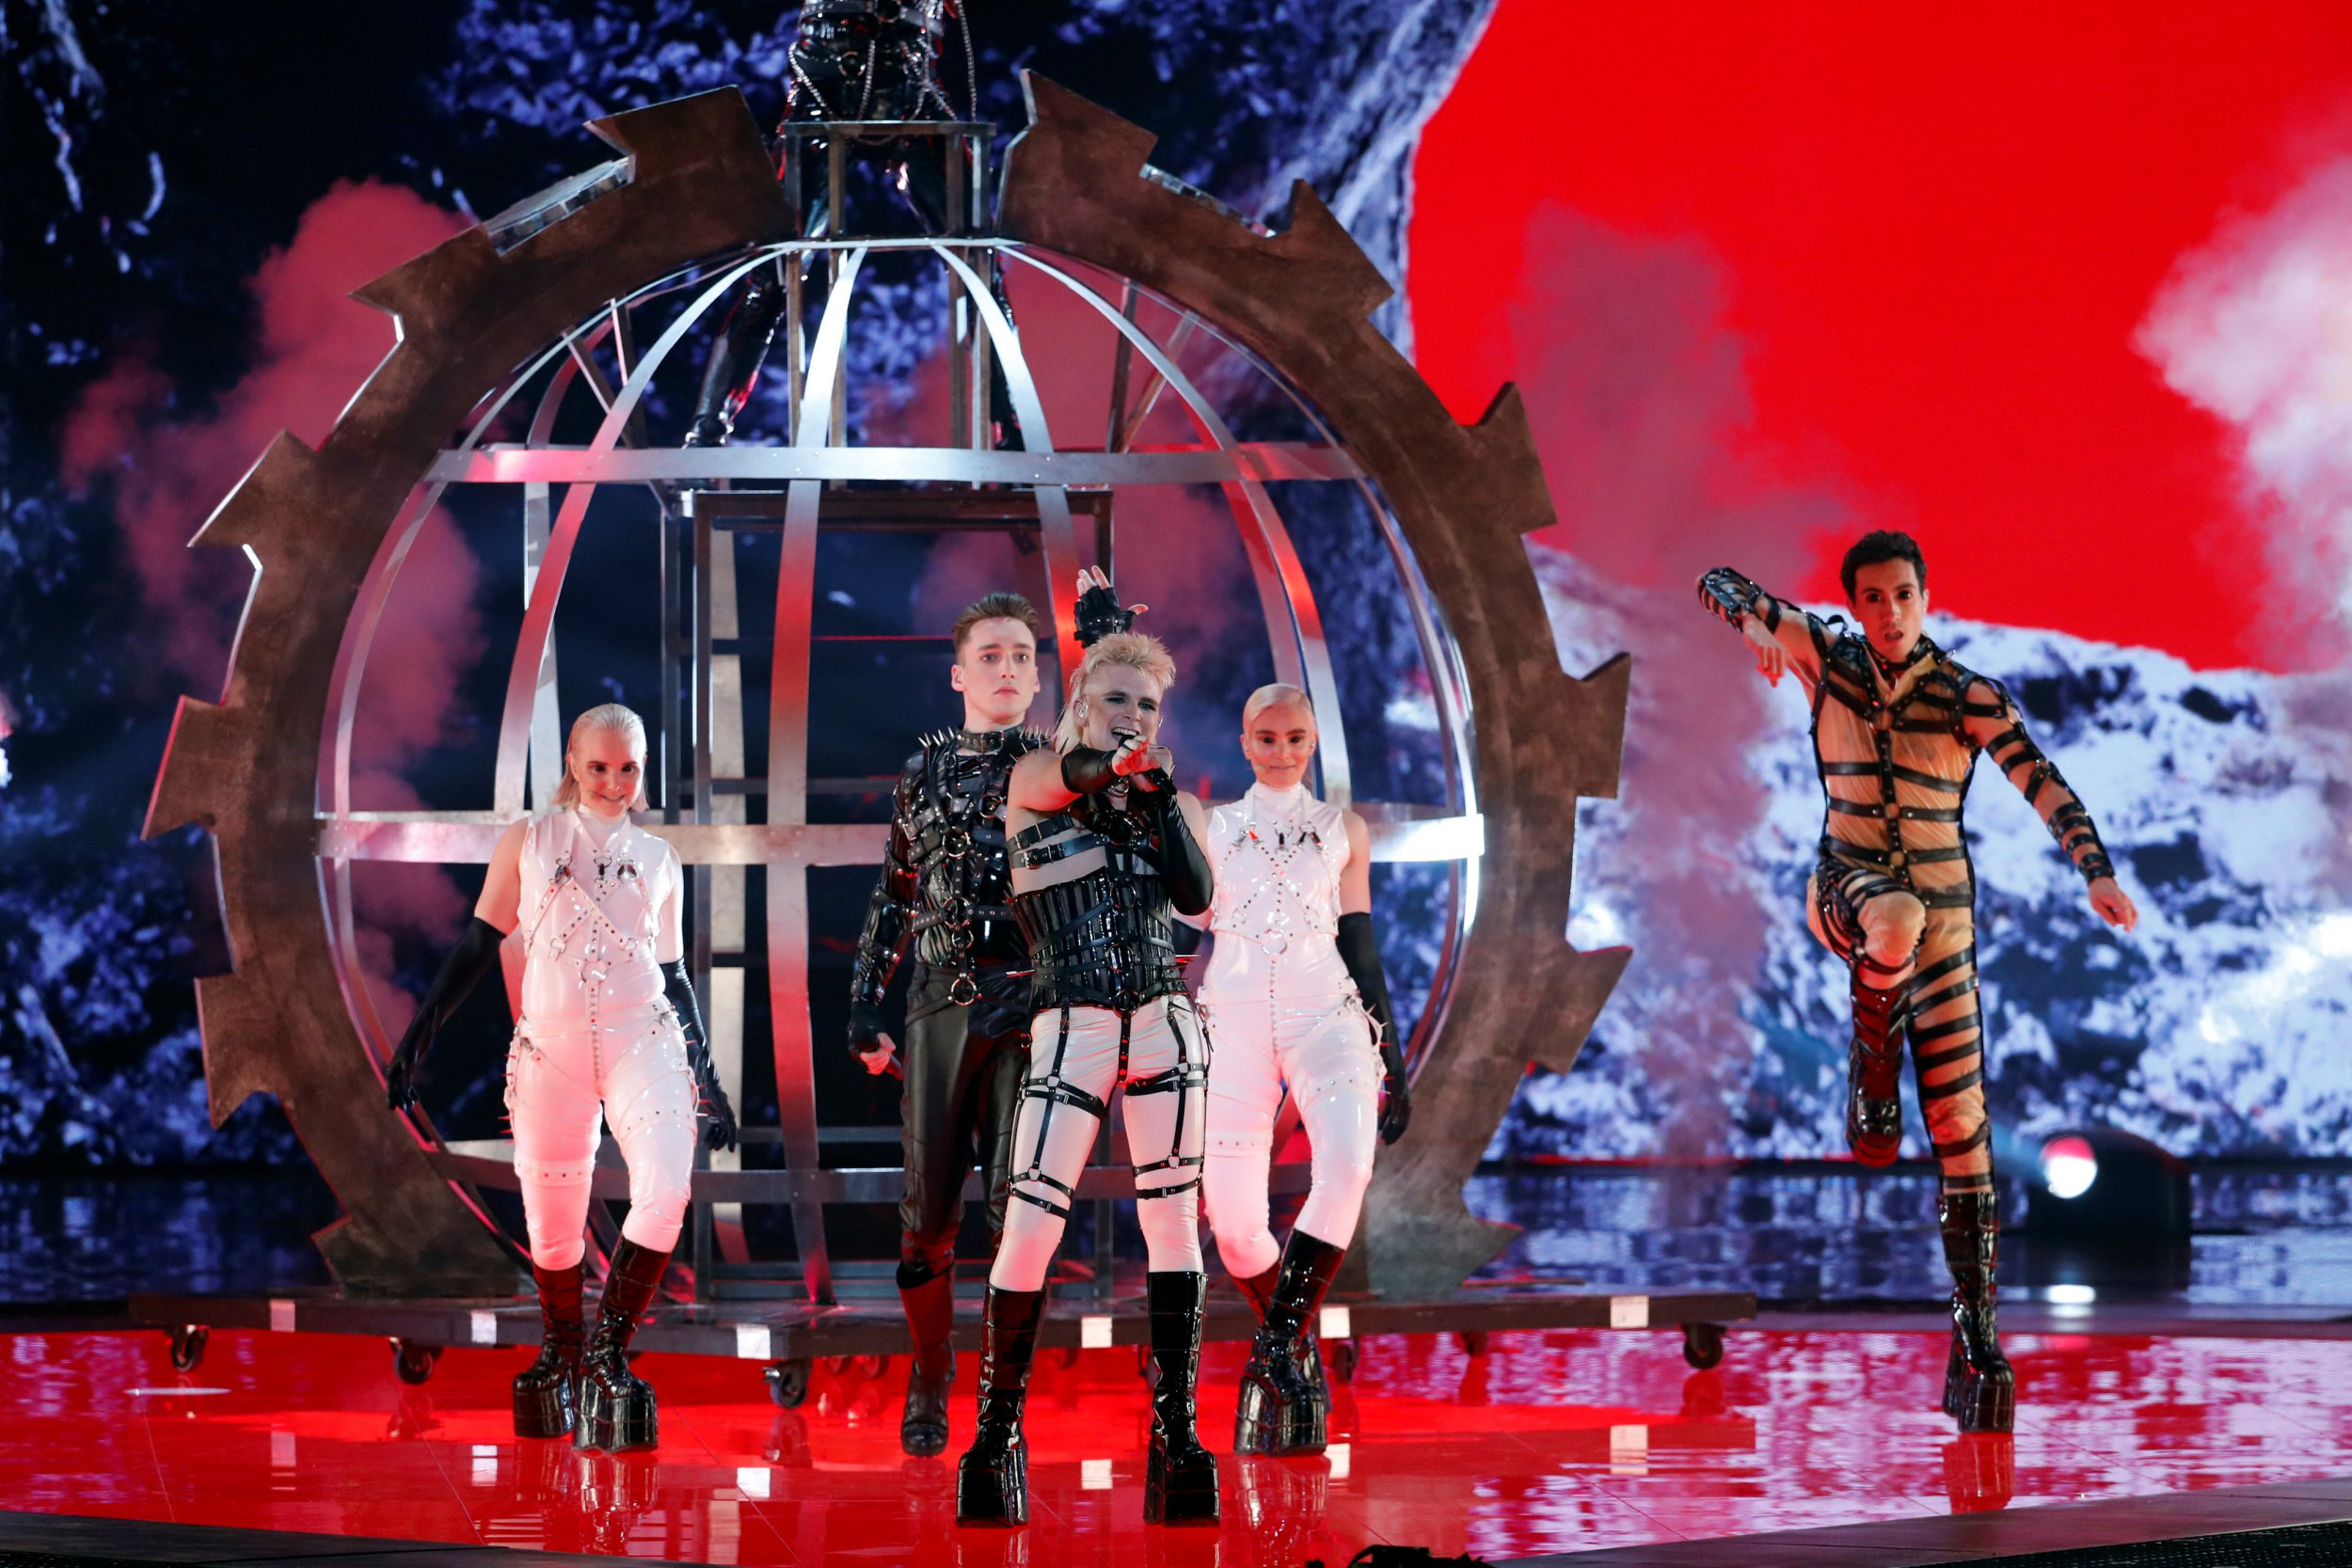 Iceland's Eurovision song from Hatari translated into English is pretty dark